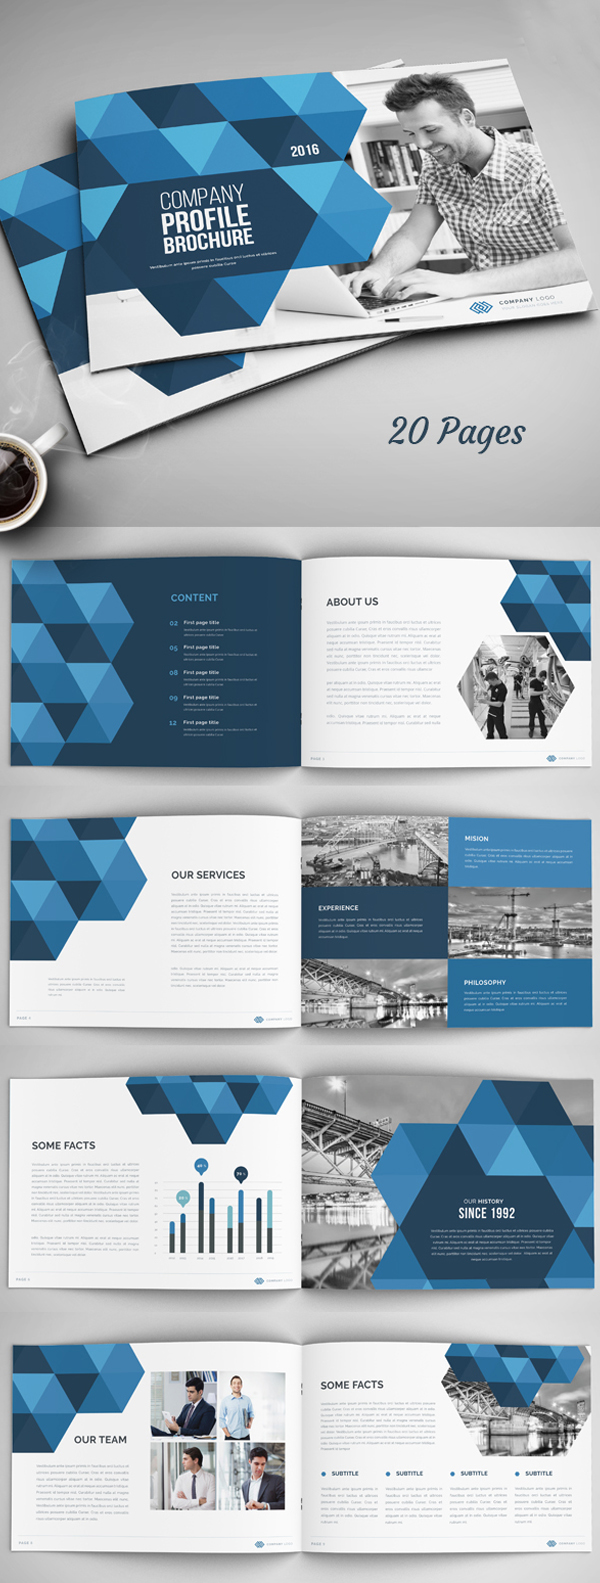 New catalog brochure design templates design graphic for Brochure for web design company